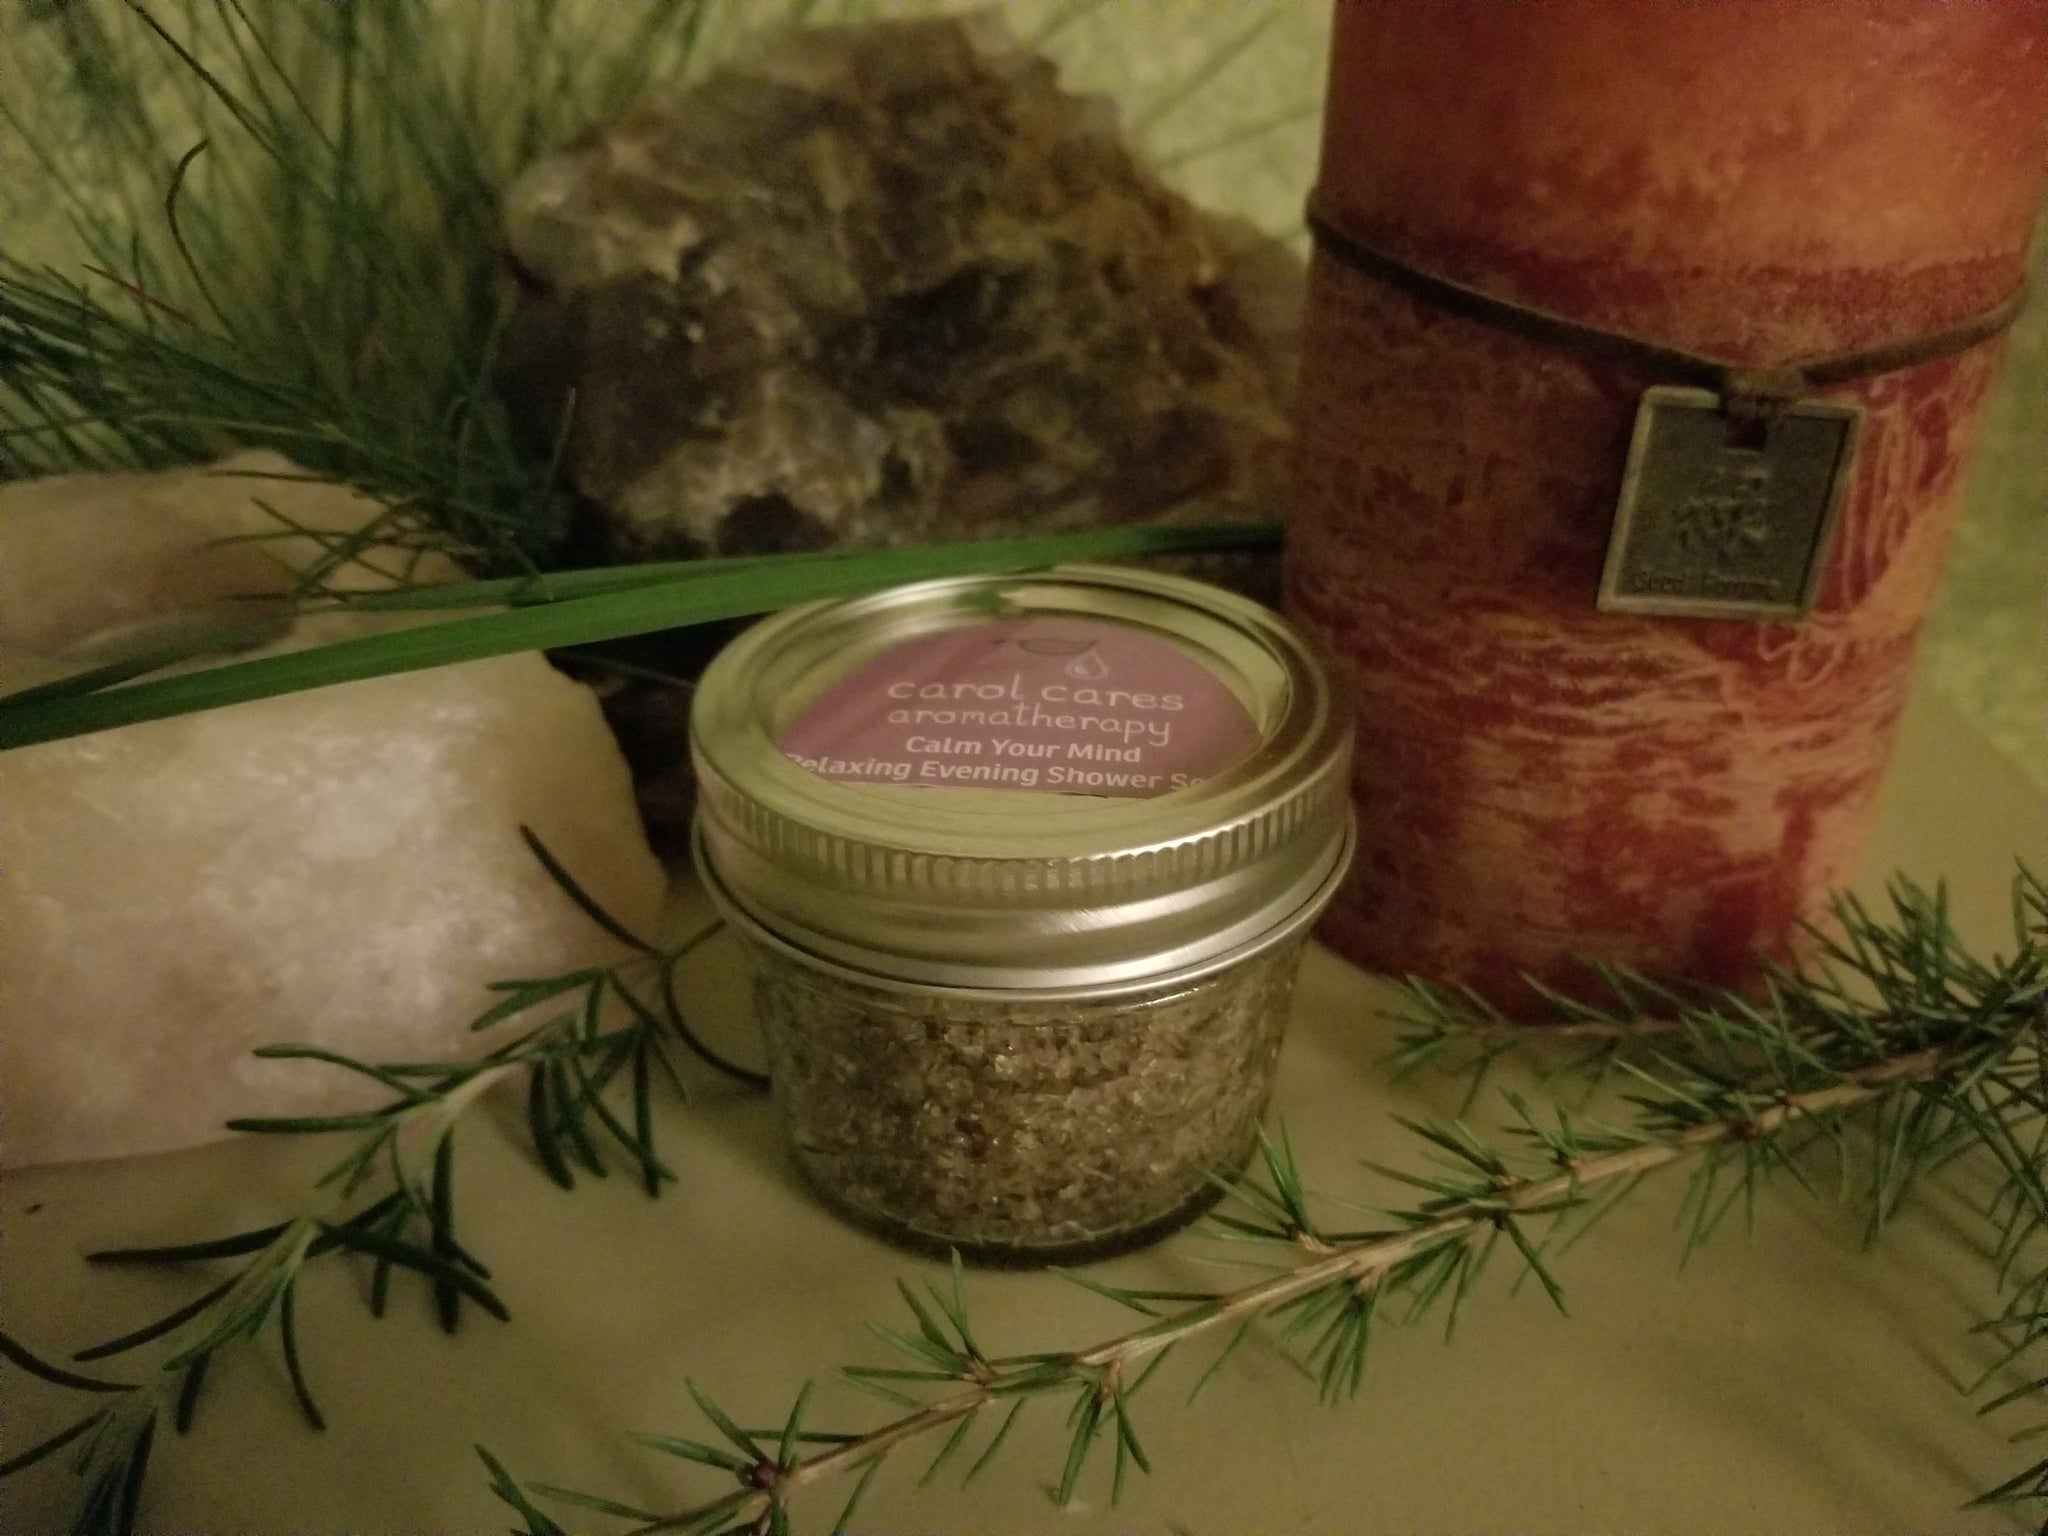 Calm Your Mind Evening Body Shower Scrub